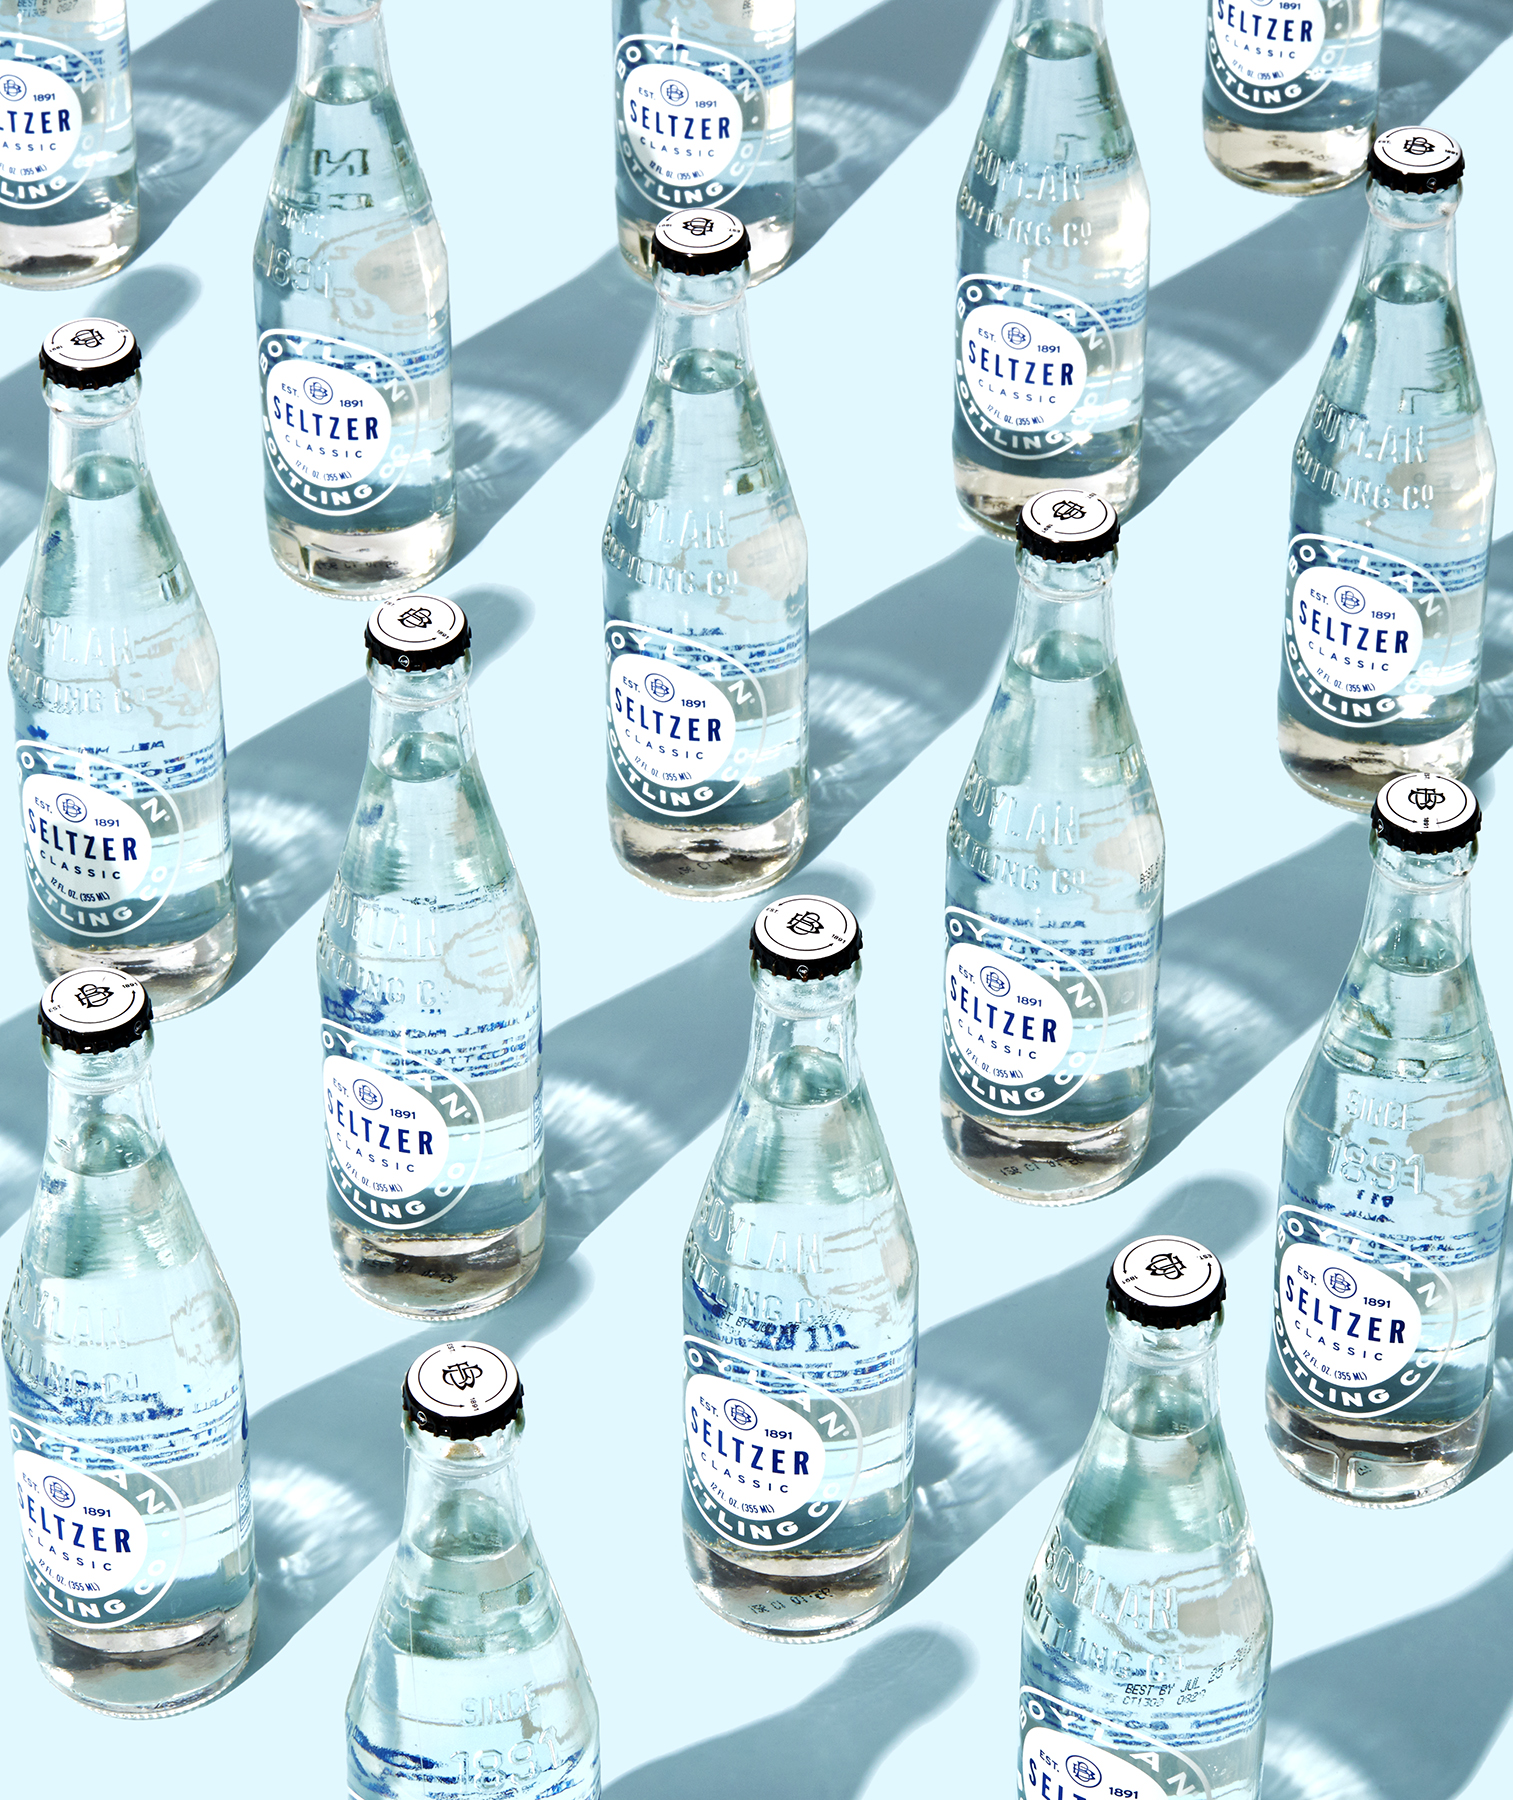 seltzer-water-cooking-recipes